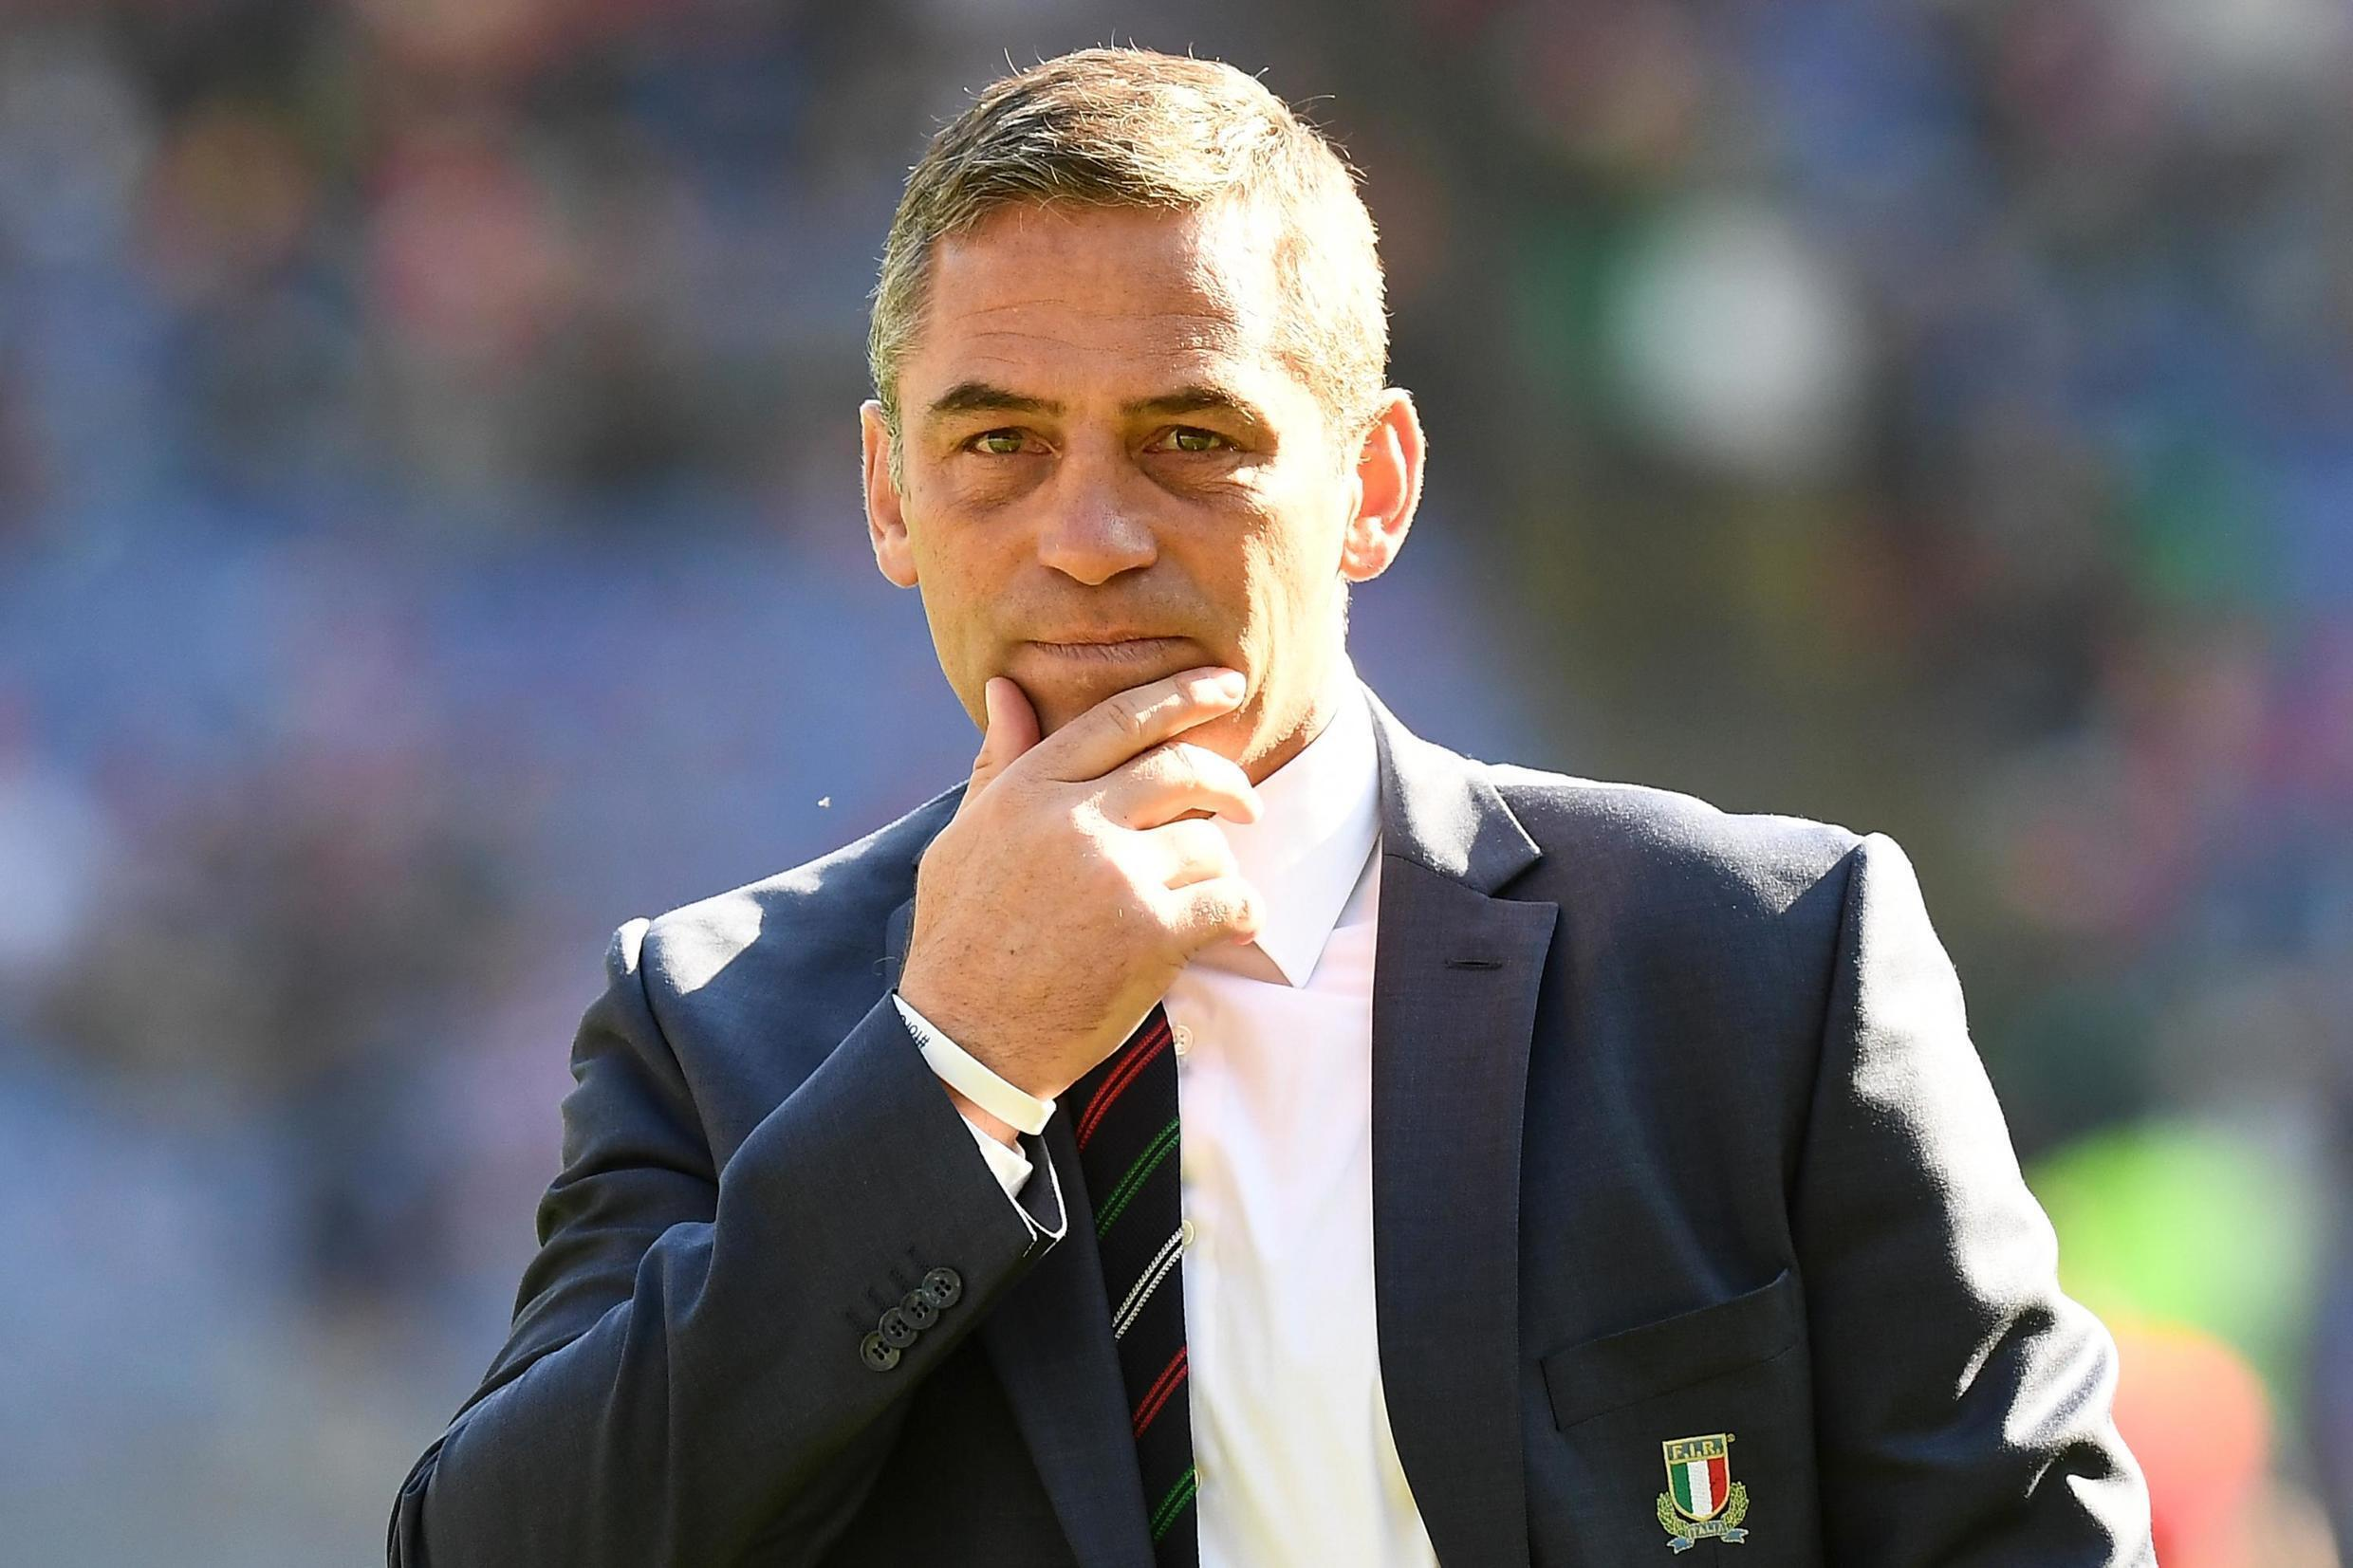 Franco Smith took over as Italy's rugby union coach in November 2019.